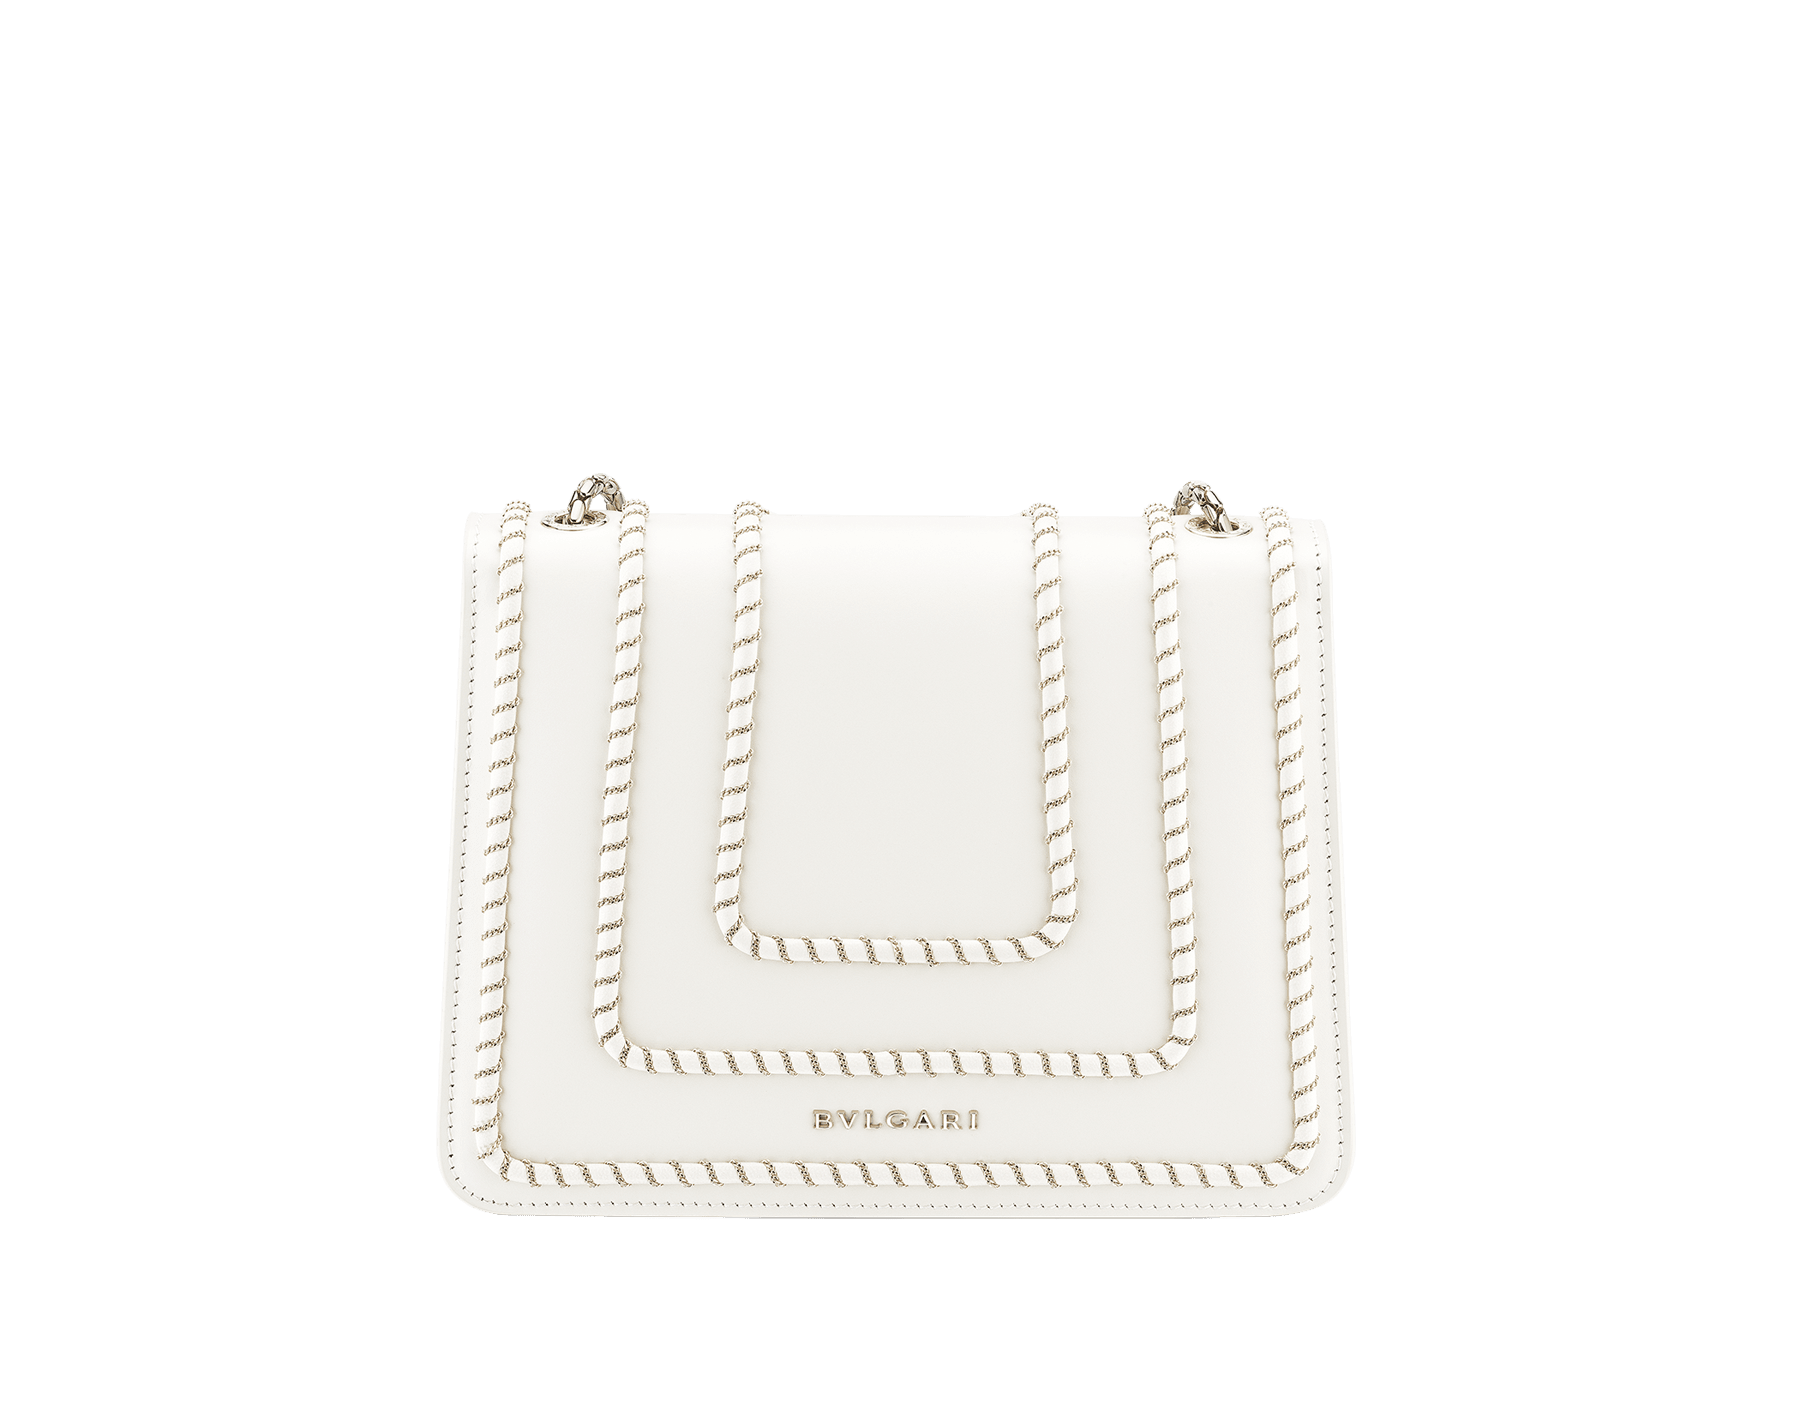 """""""Serpenti Forever"""" crossbody bag in black calf leather, featuring a Woven Chain motif. Iconic snakehead closure in light gold plated brass enriched with shiny black enamel and black onyx eyes 422-WC image 3"""